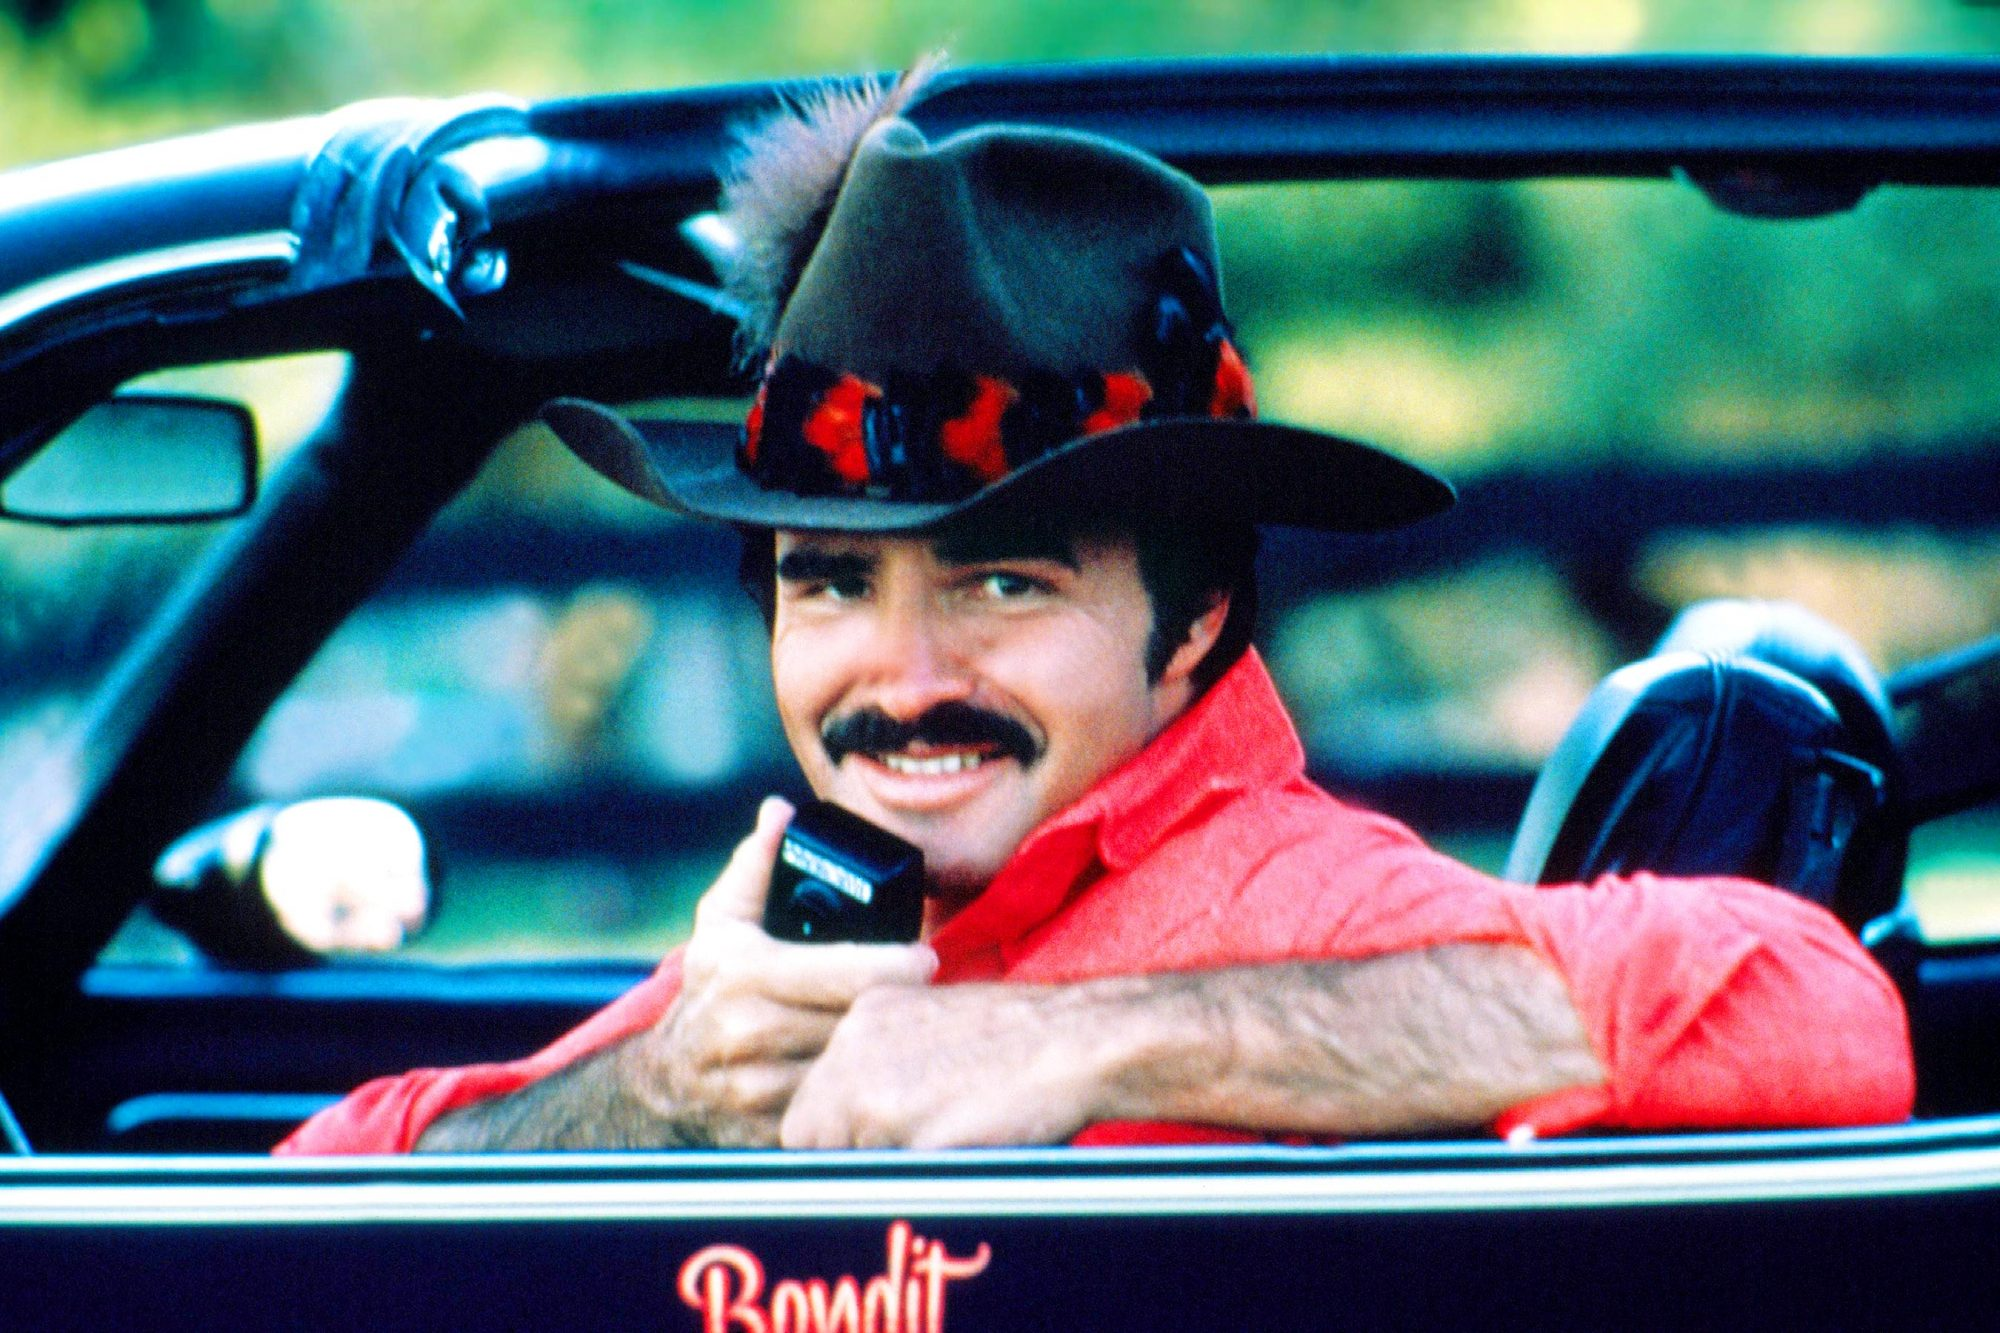 Burt Reynolds, 'Smokey and the Bandit' and 'Boogie Nights' star, dies at 82